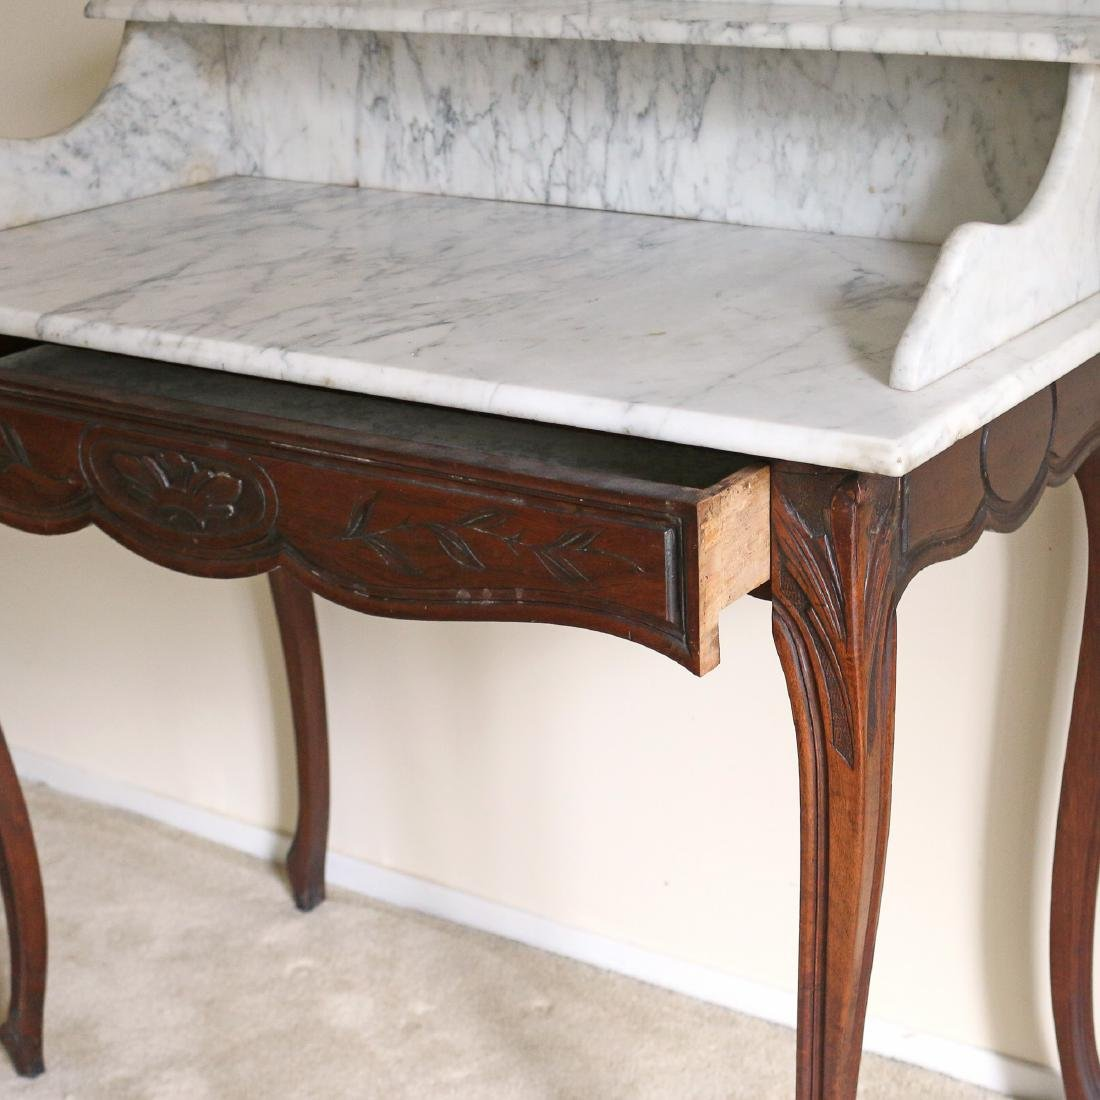 ANTIQUE MARBLE-TOP WASH STAND - 2